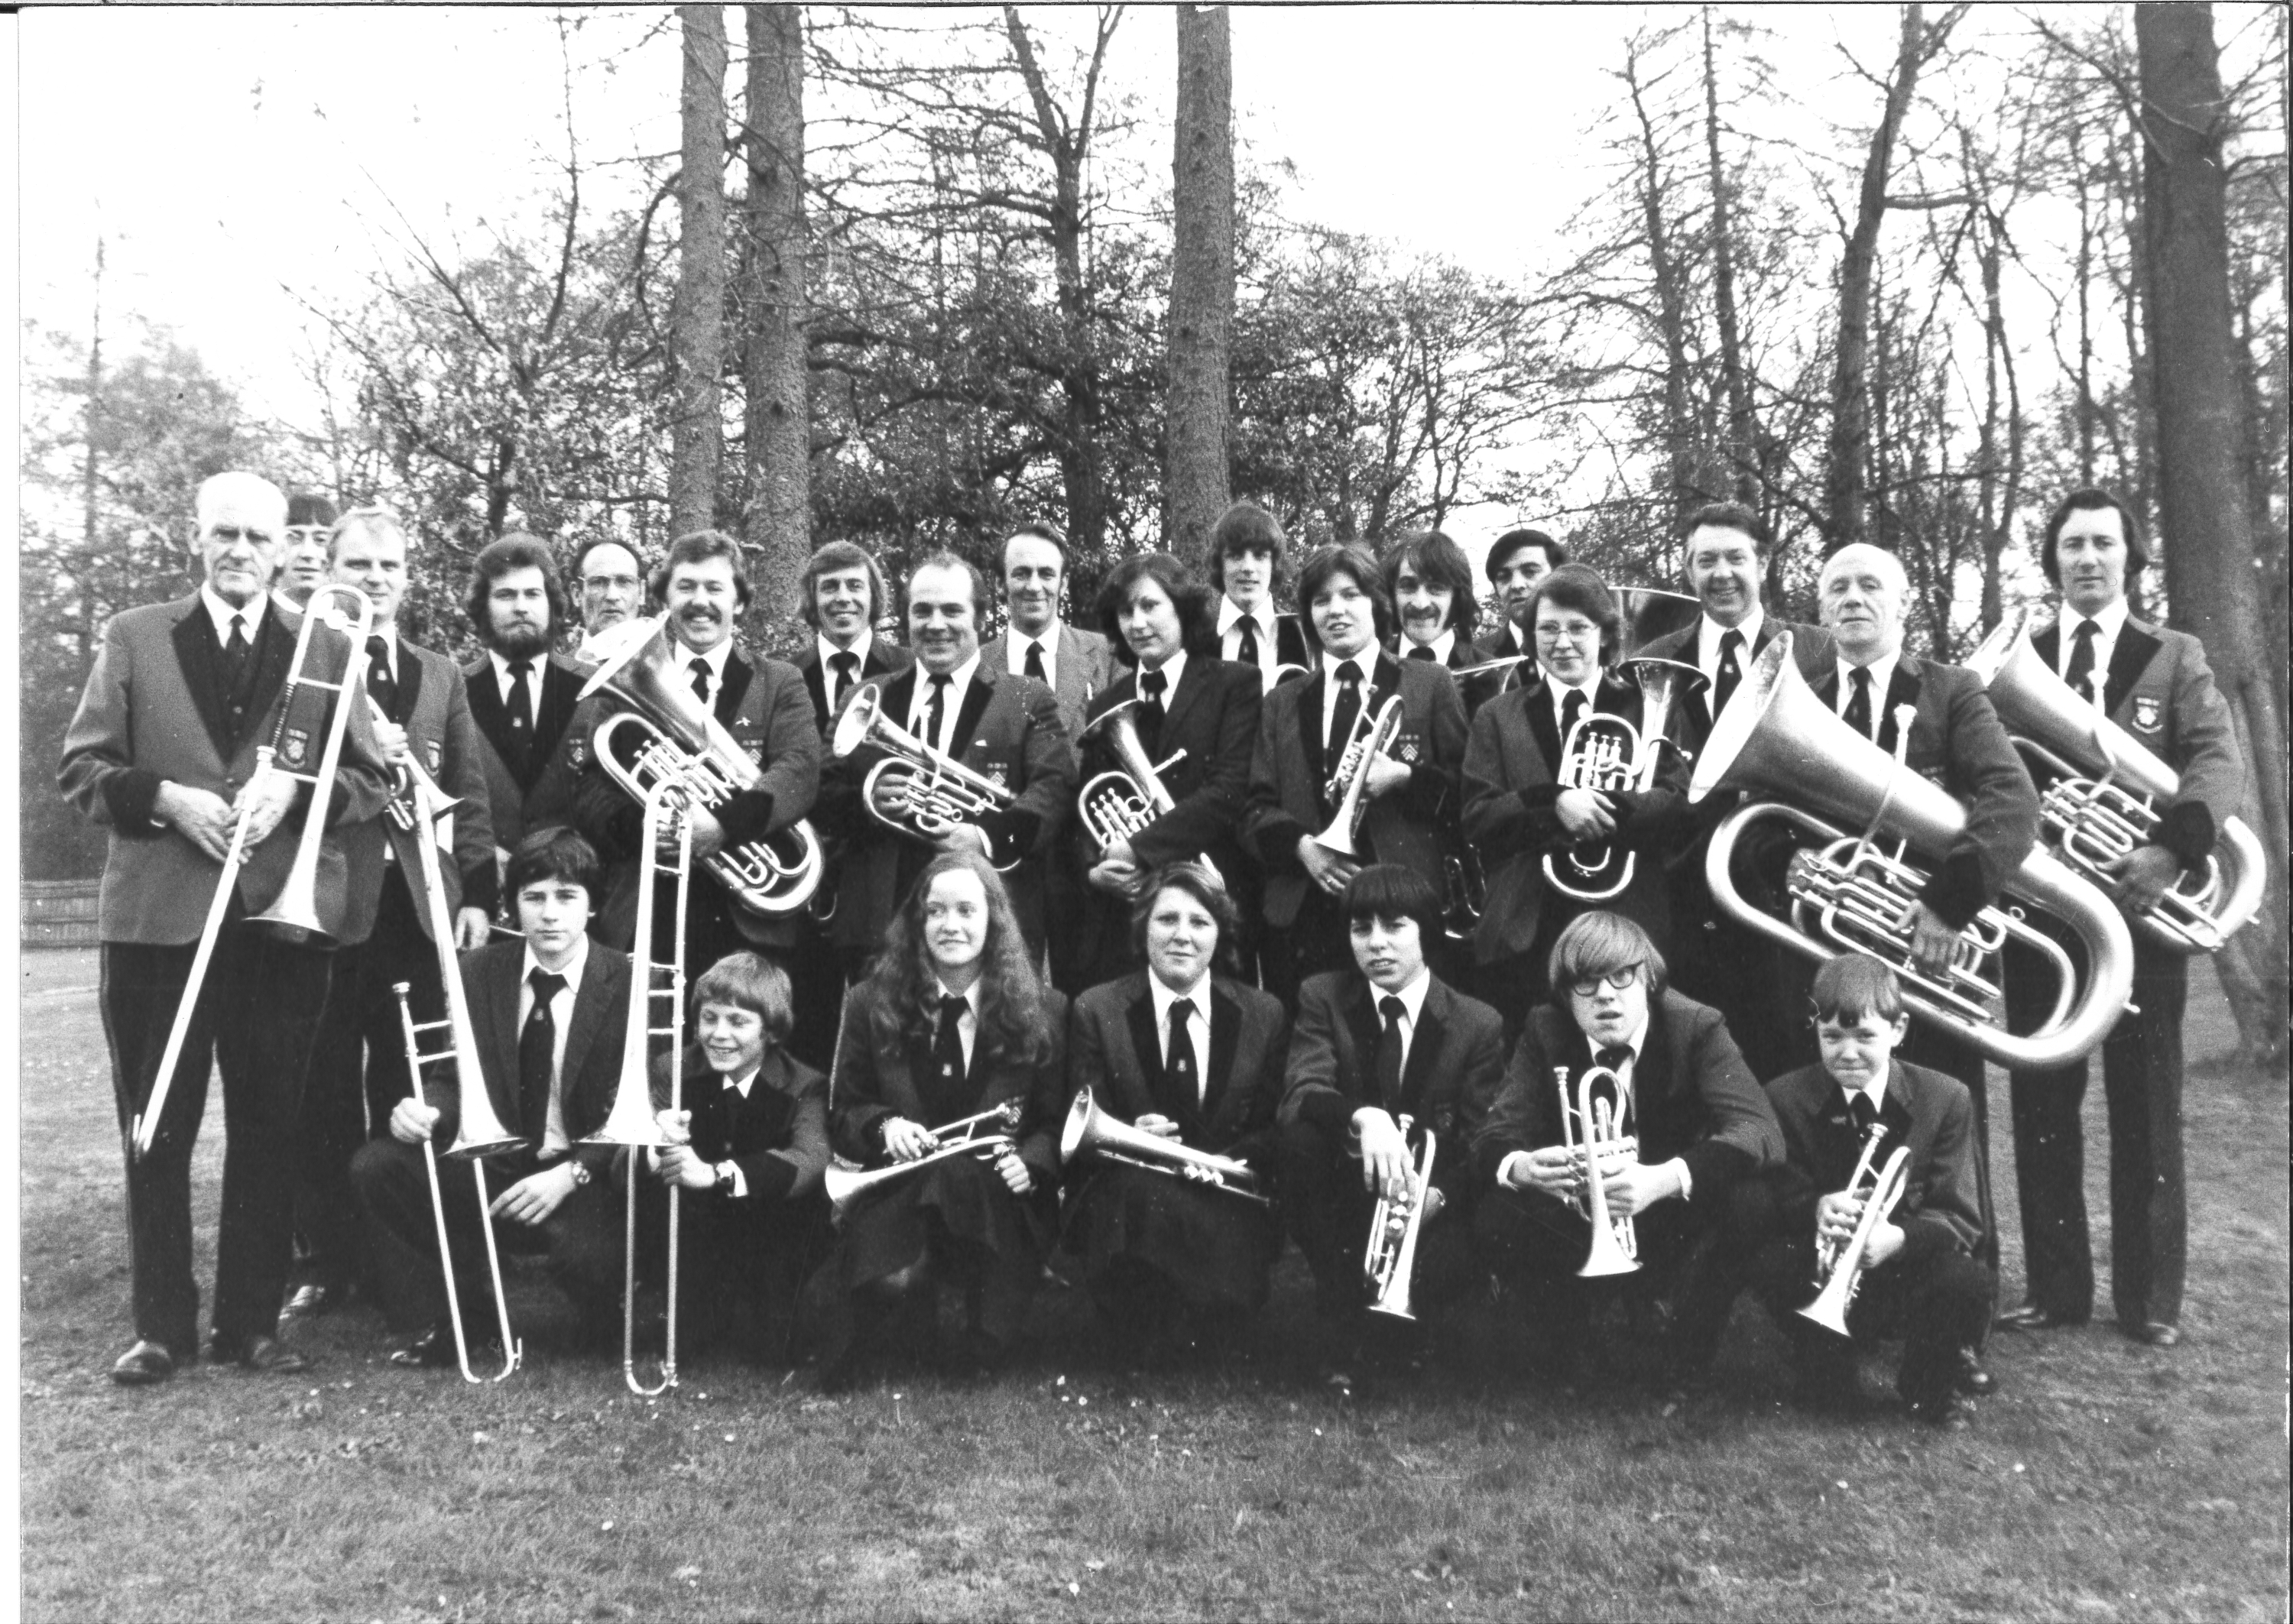 Coleford Town Band early 1970s